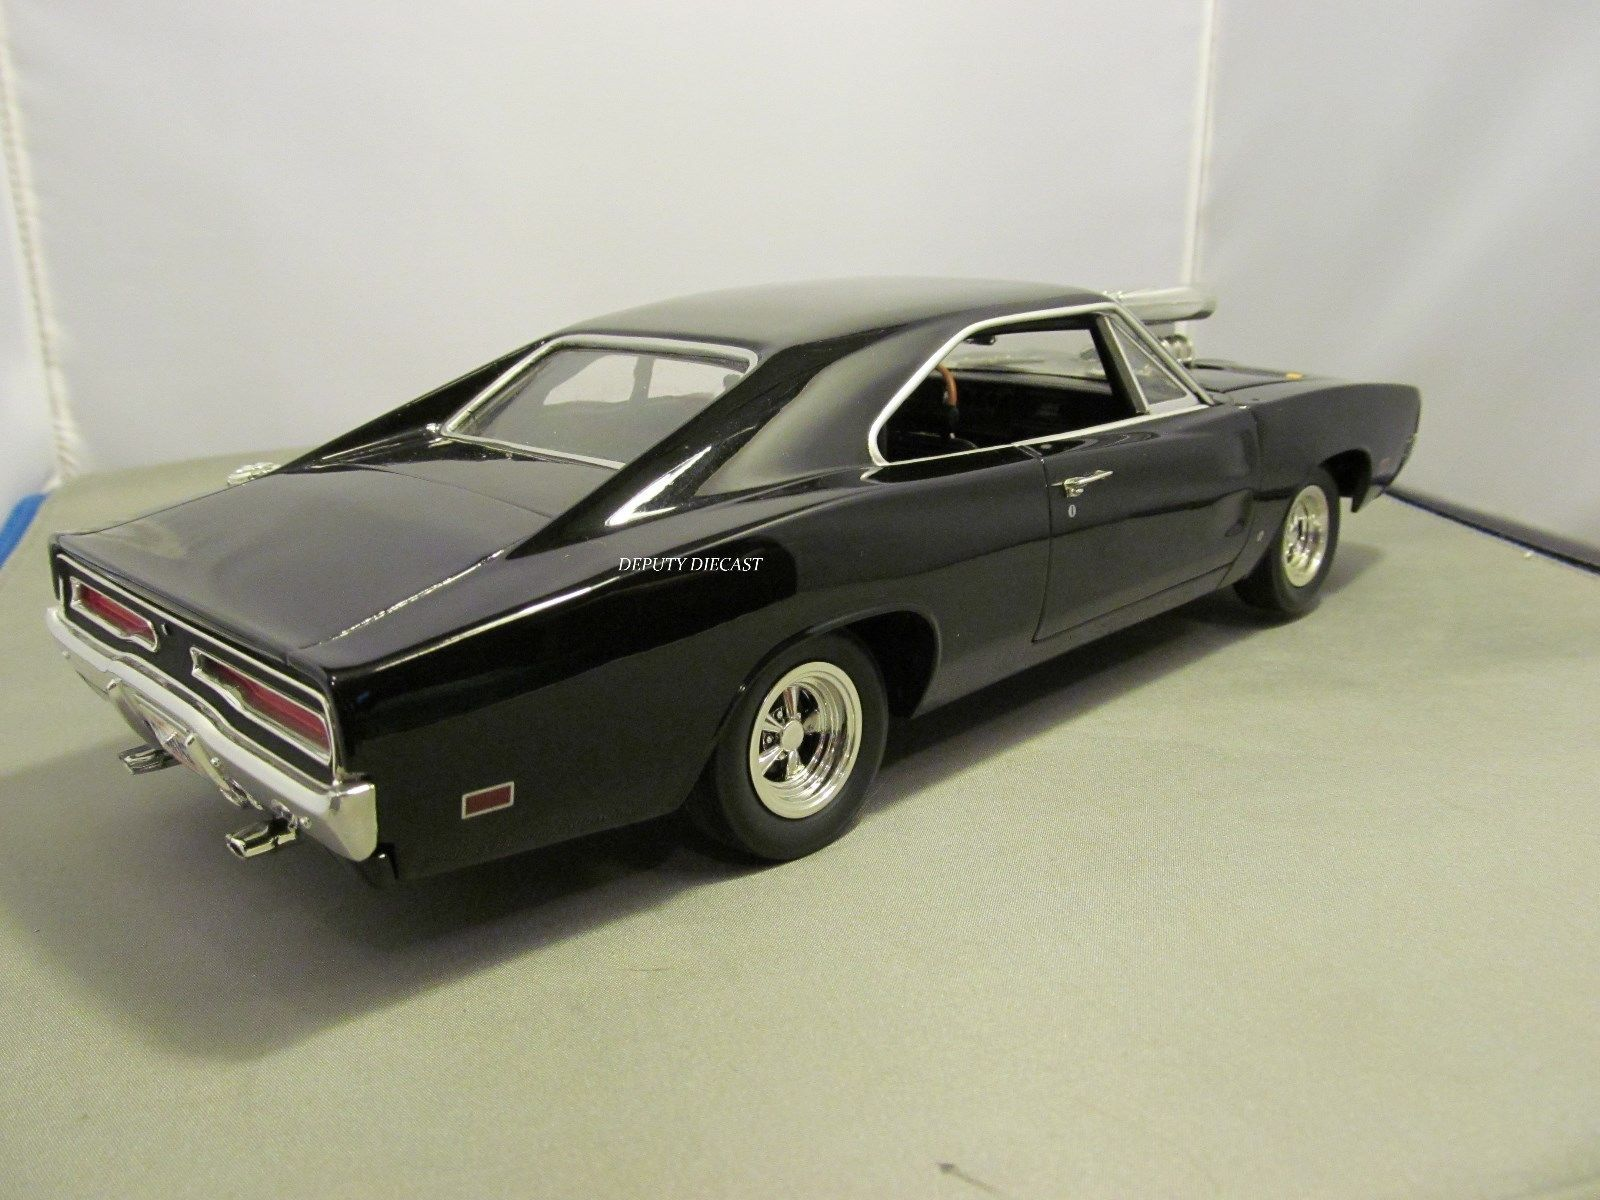 ERTL 1/18 FAST AND FURIOUS BLACK DODGE CHARGER *READ* NO BOX   eBay